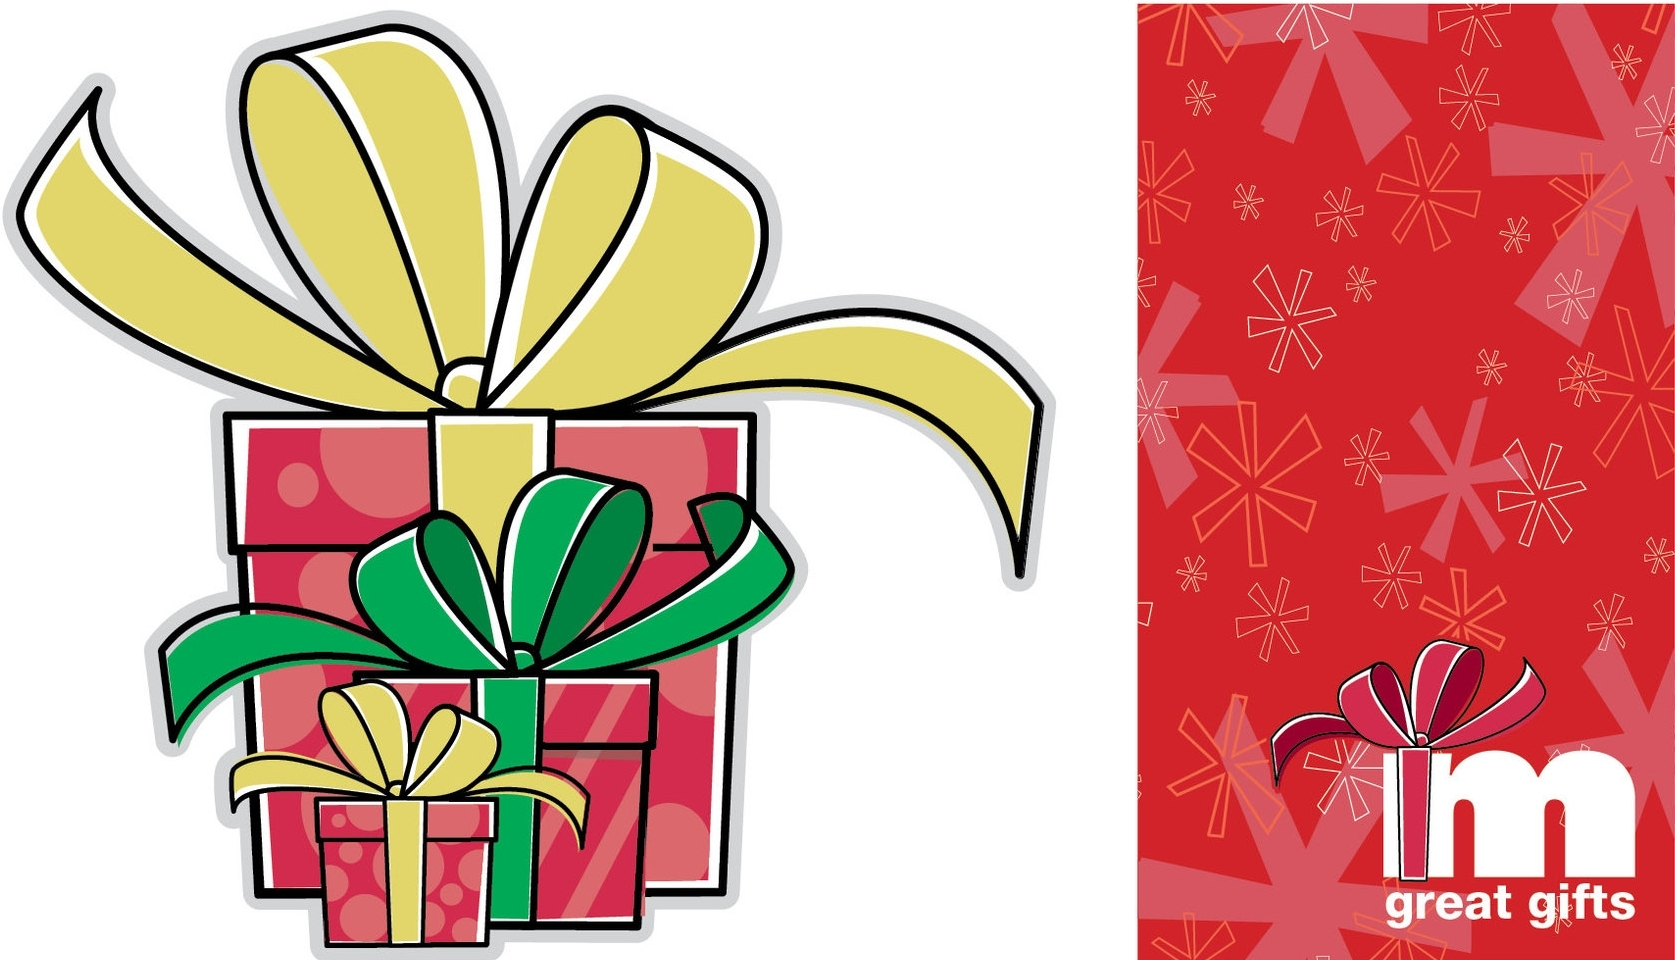 MERVYNS HOLIDAY CONCEPT - Design and illustrate gift box concept for holiday in-store campaign.Responsible for concept, design and illustrations.